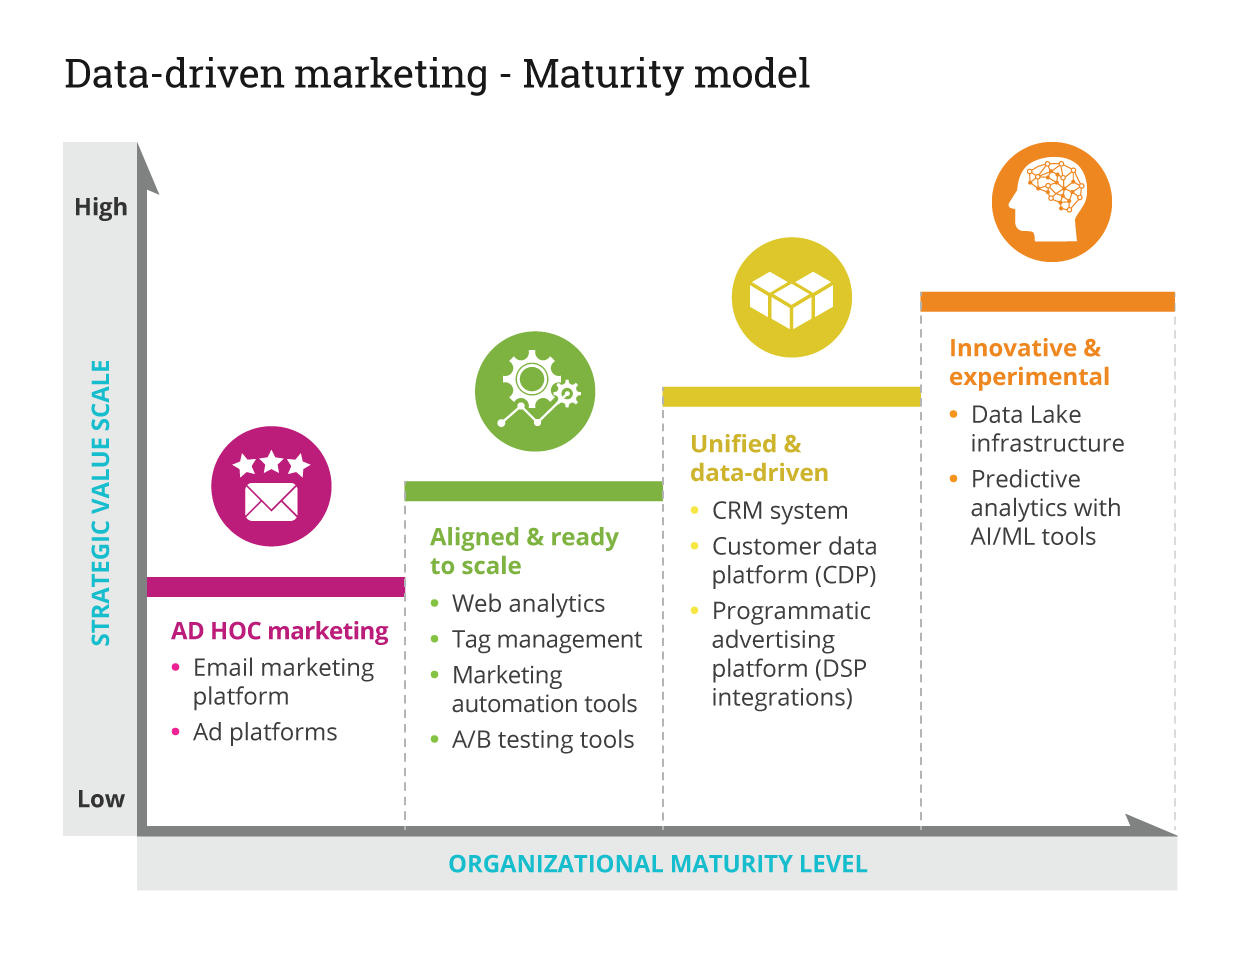 HGS's data-driven marketing-maturity model that shows 4 stages of marketing maturity